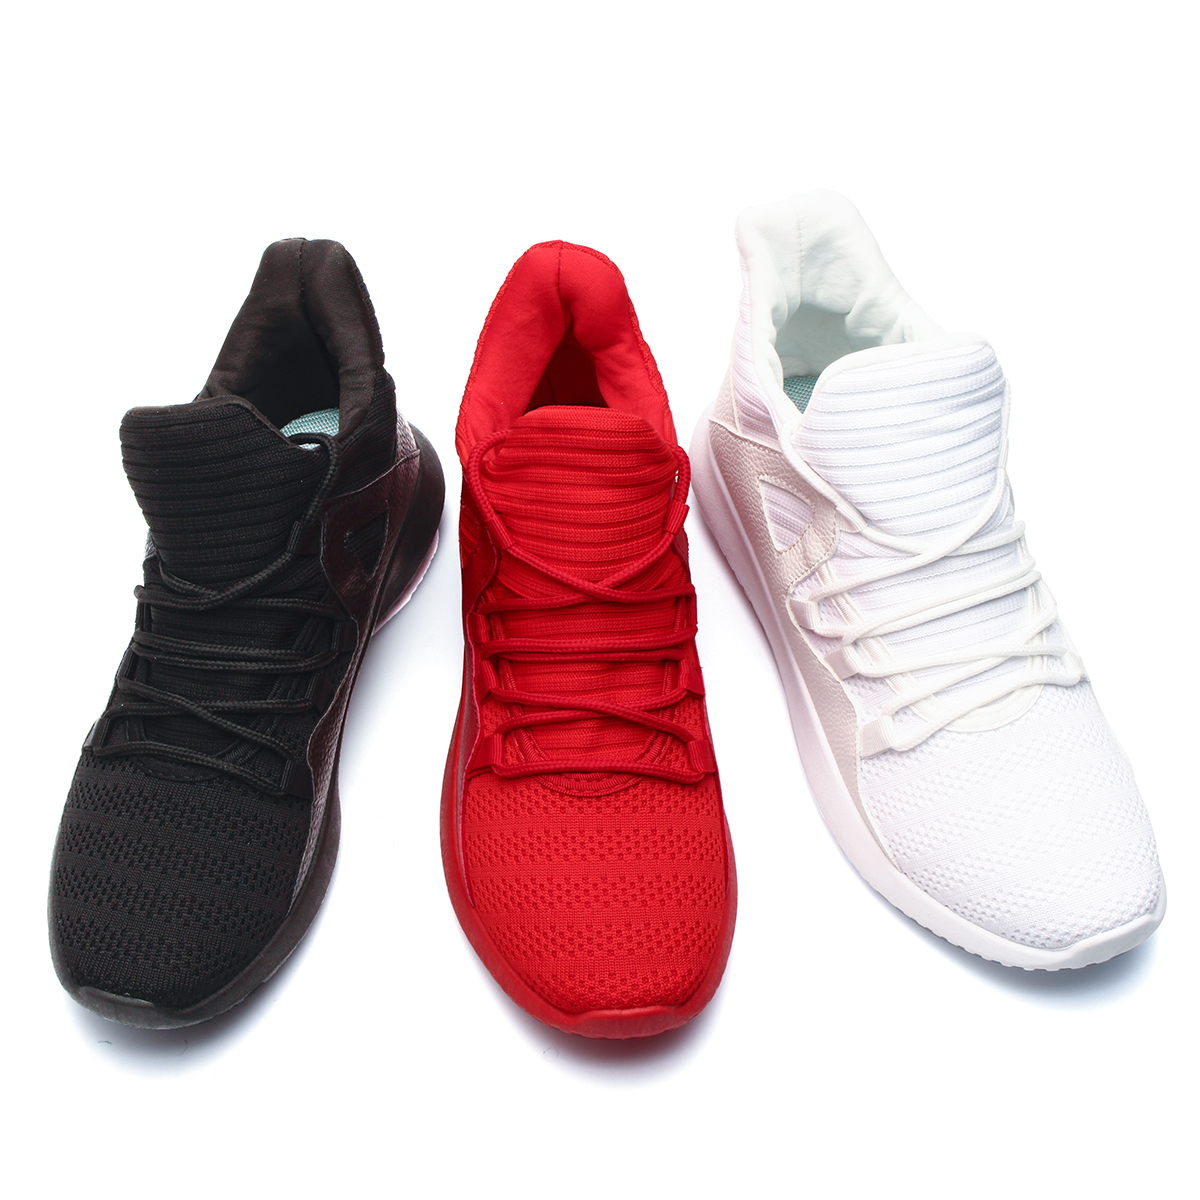 Men's Casual Soft Running Shoes Outdoor Comfortable Ant